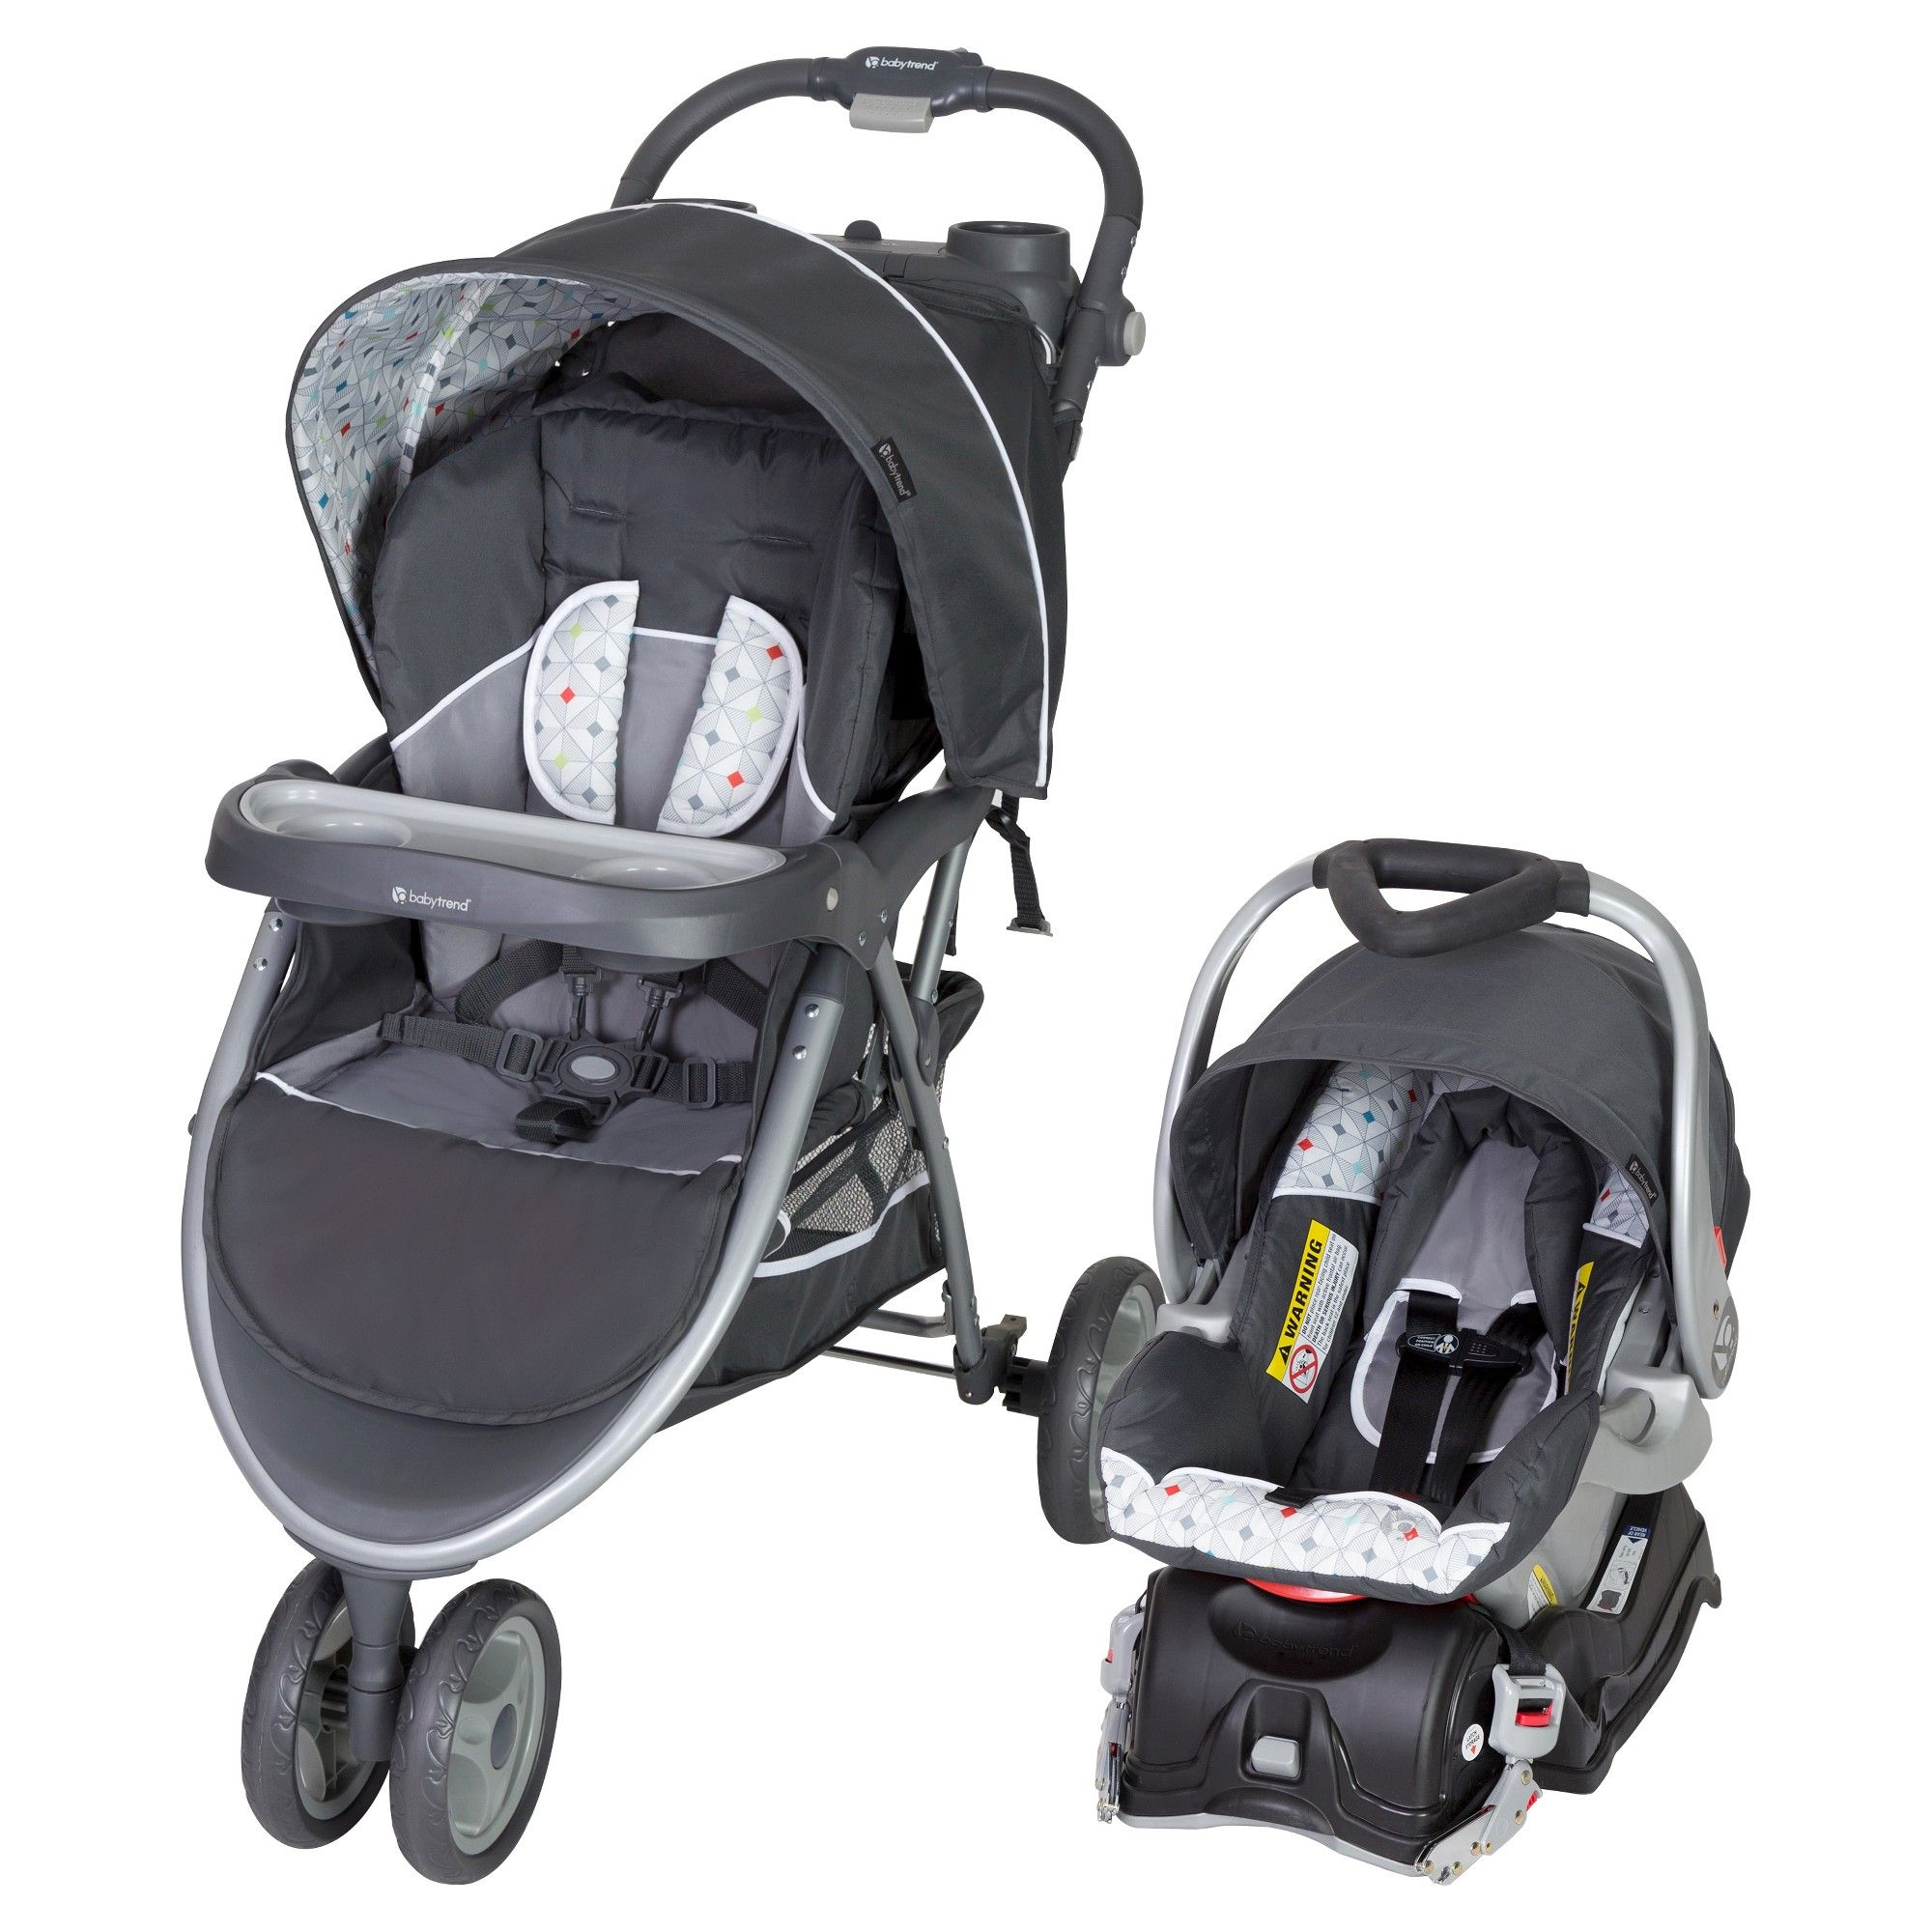 Baby Trend Skyview Travel System Diamond Geo Travel